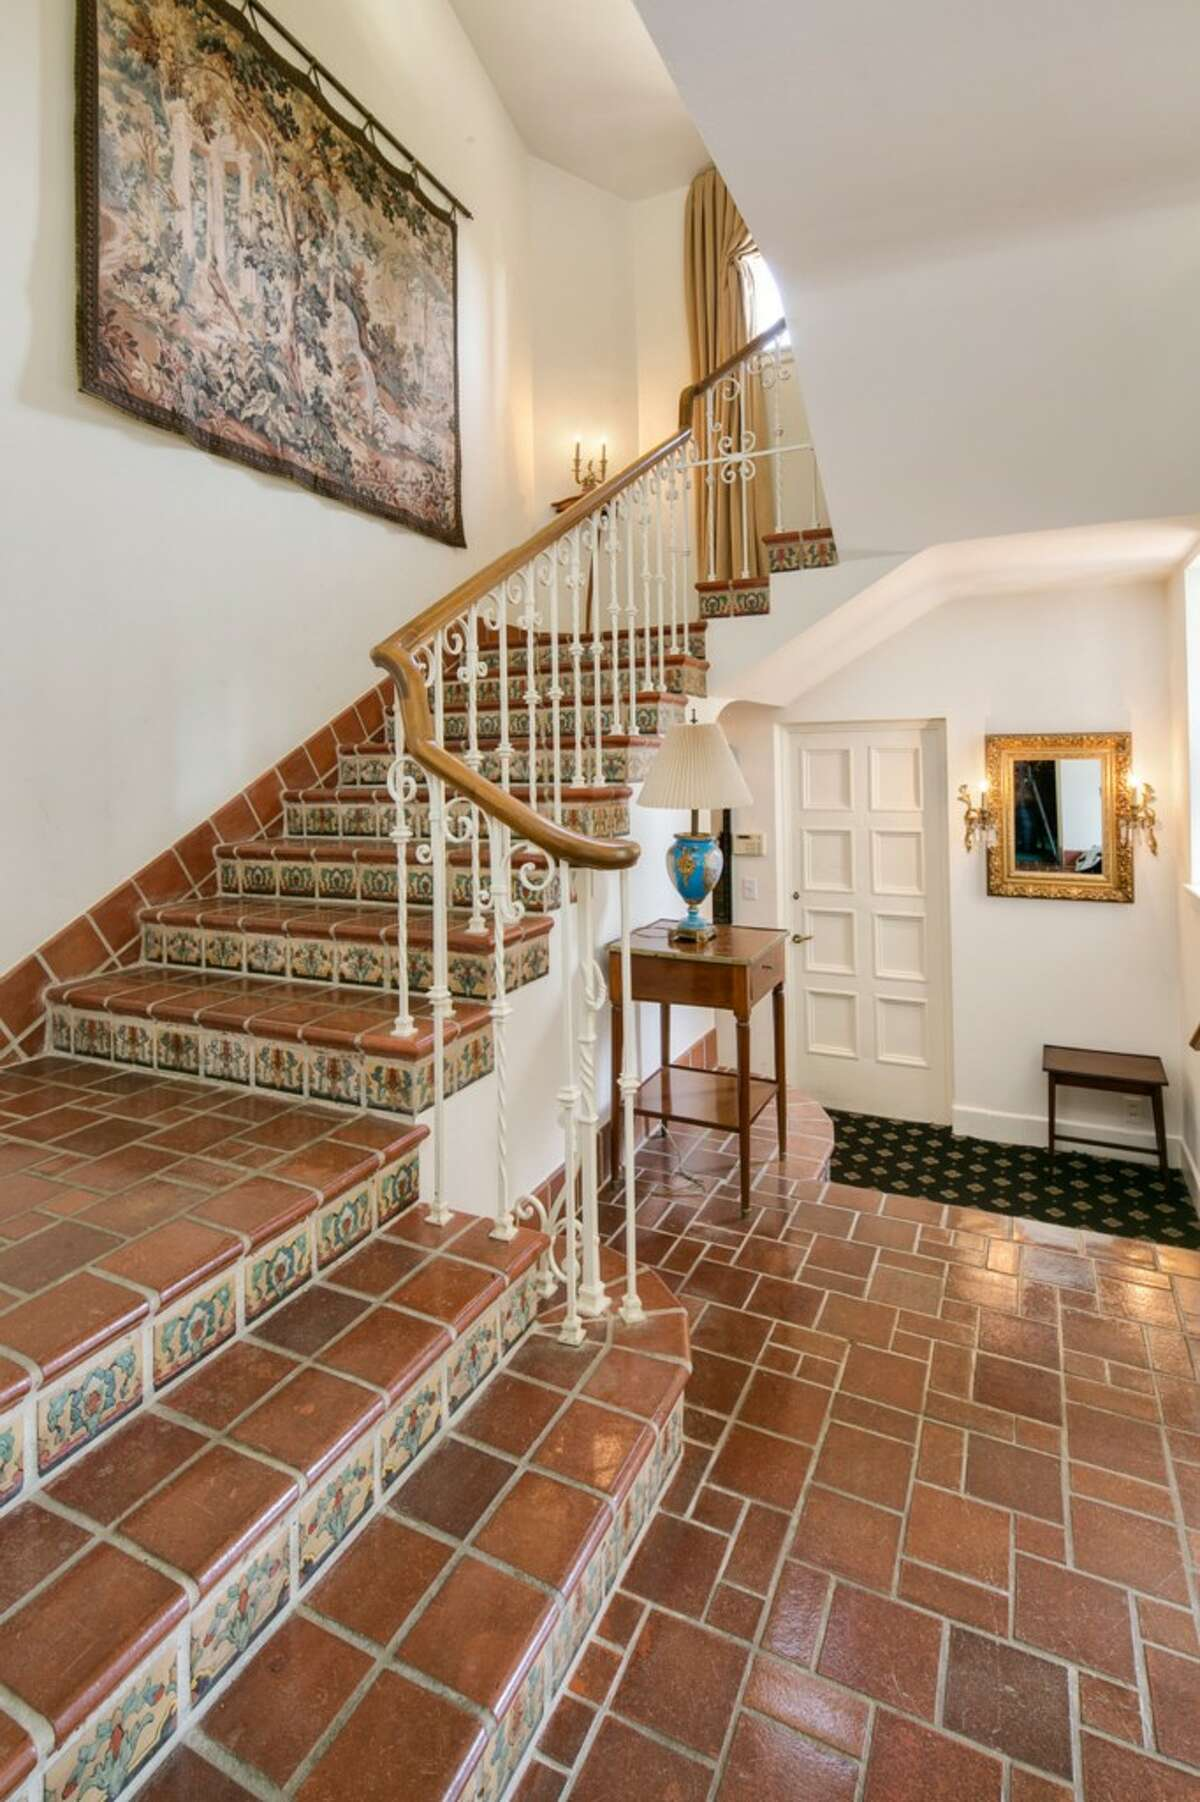 Foyer of 1535 Parkside Drive E.